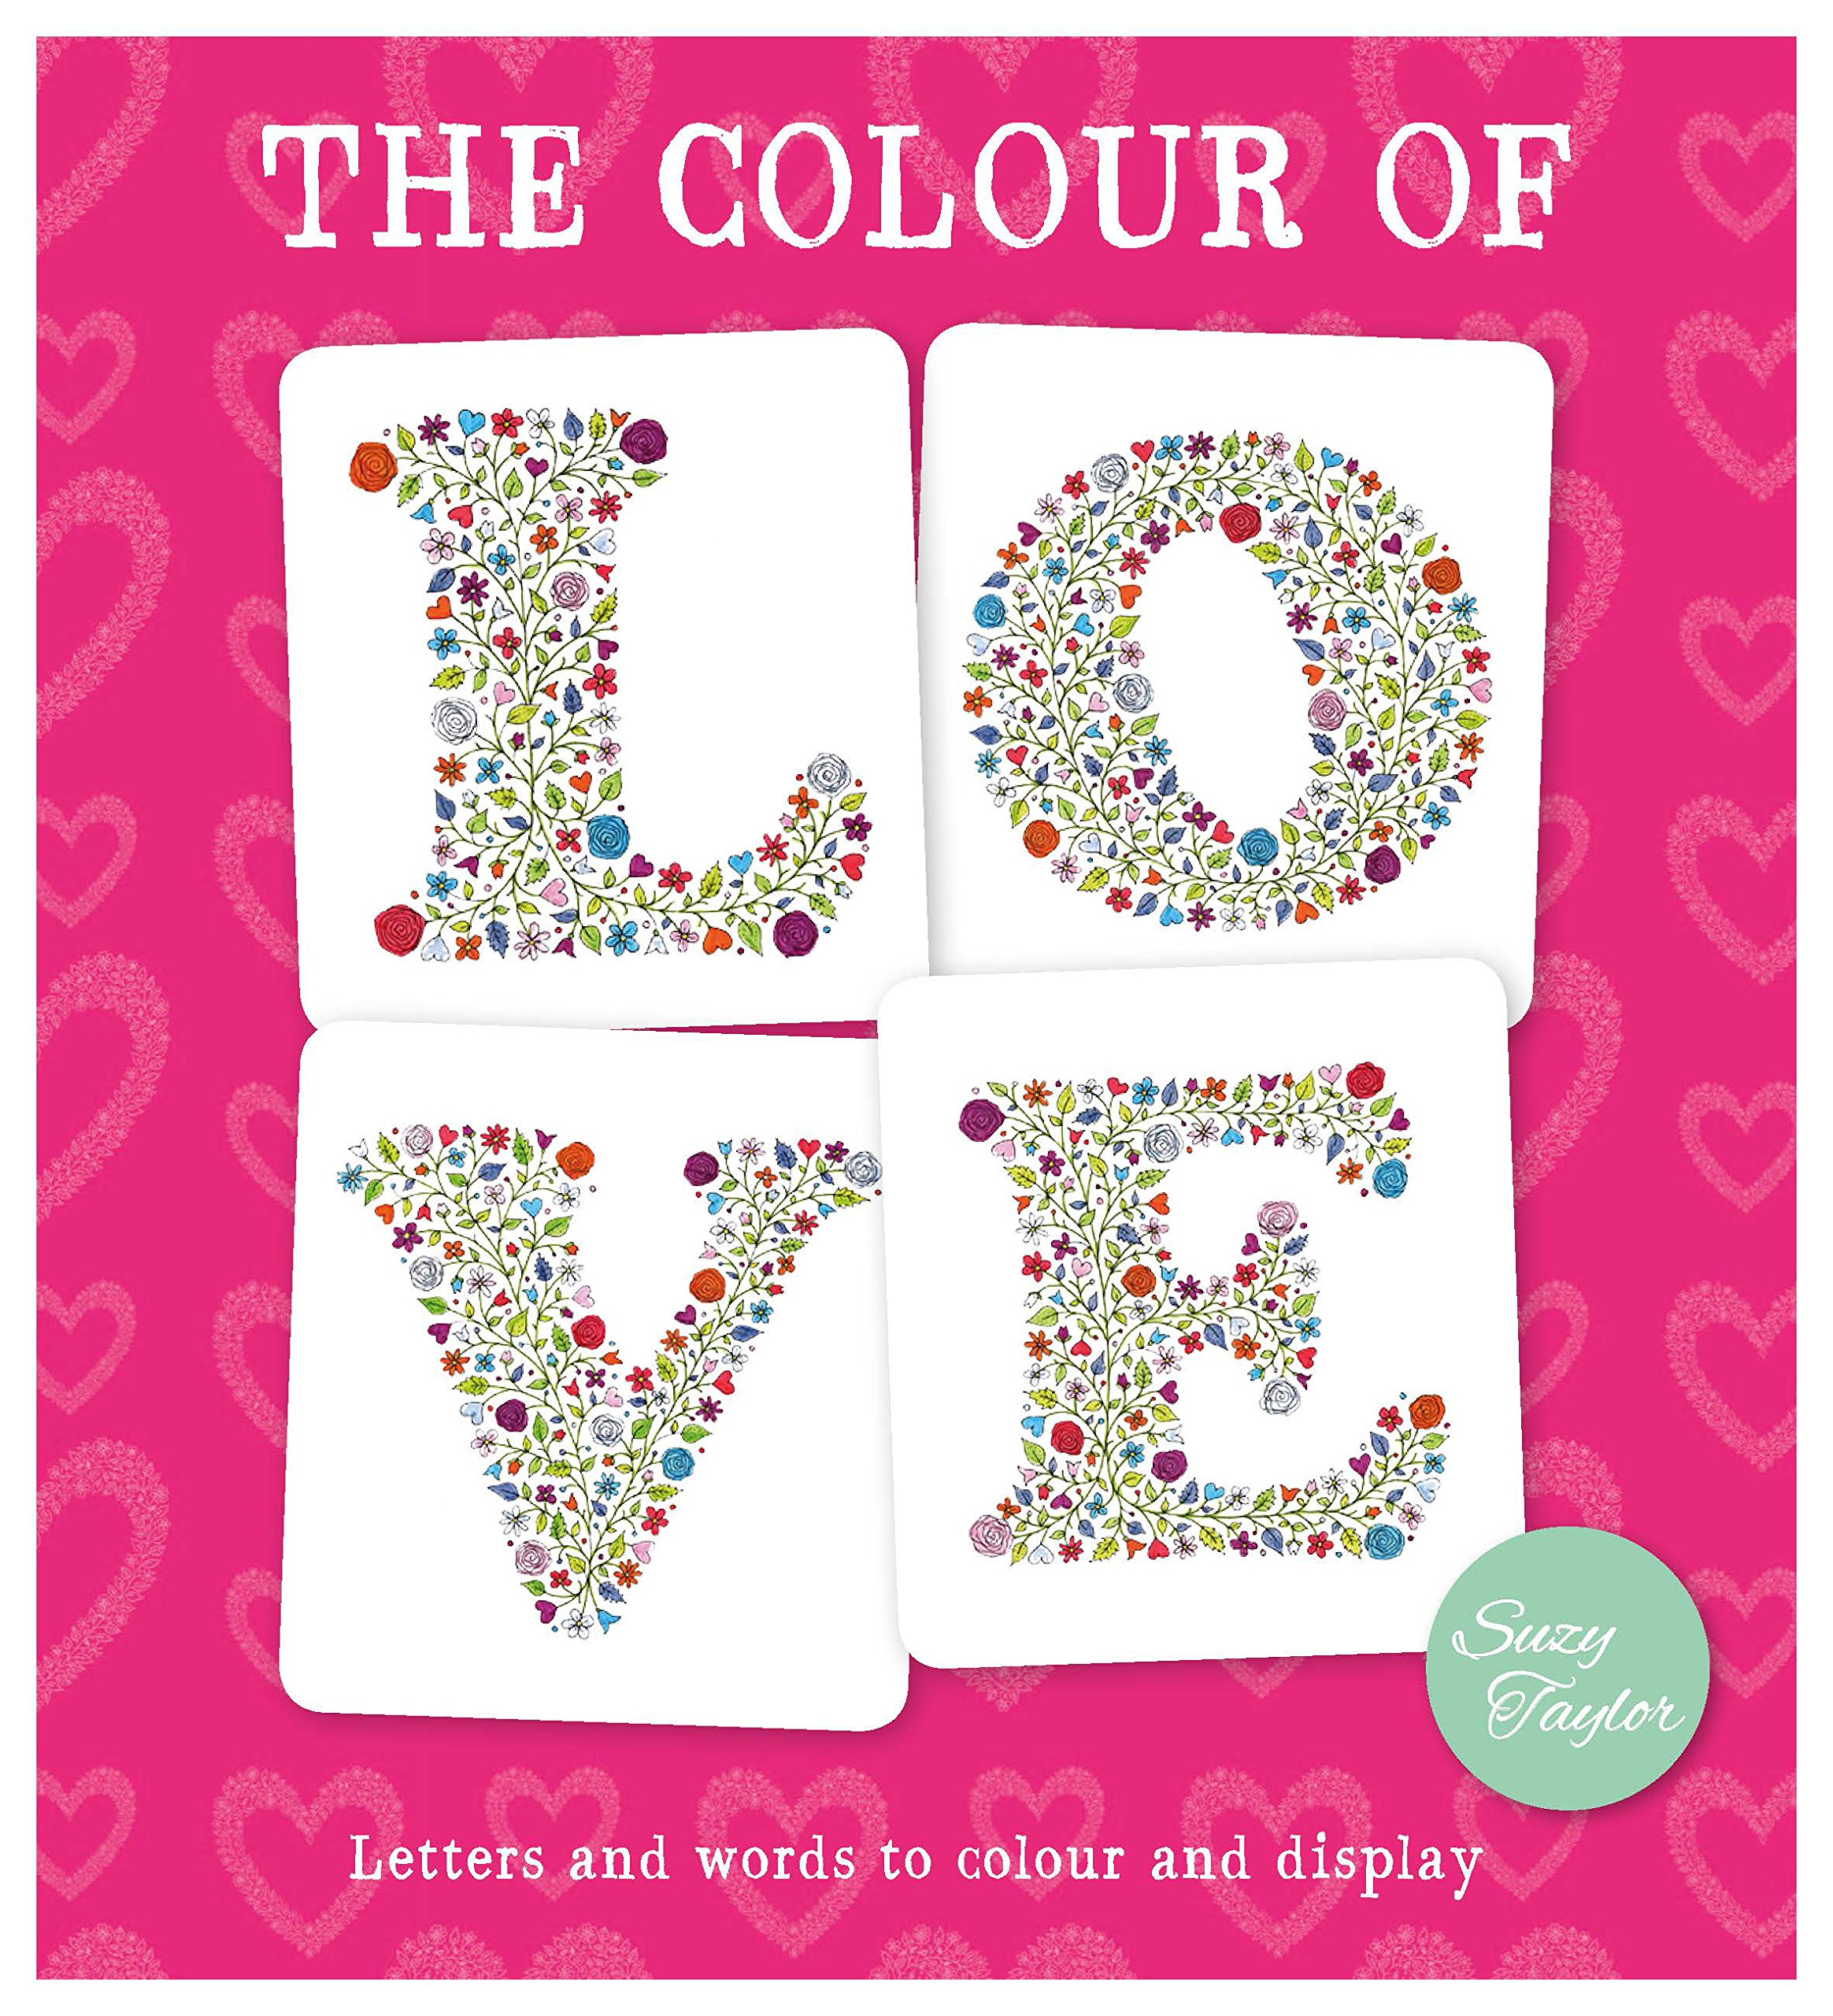 The Color of Love: Letters and words to color and display